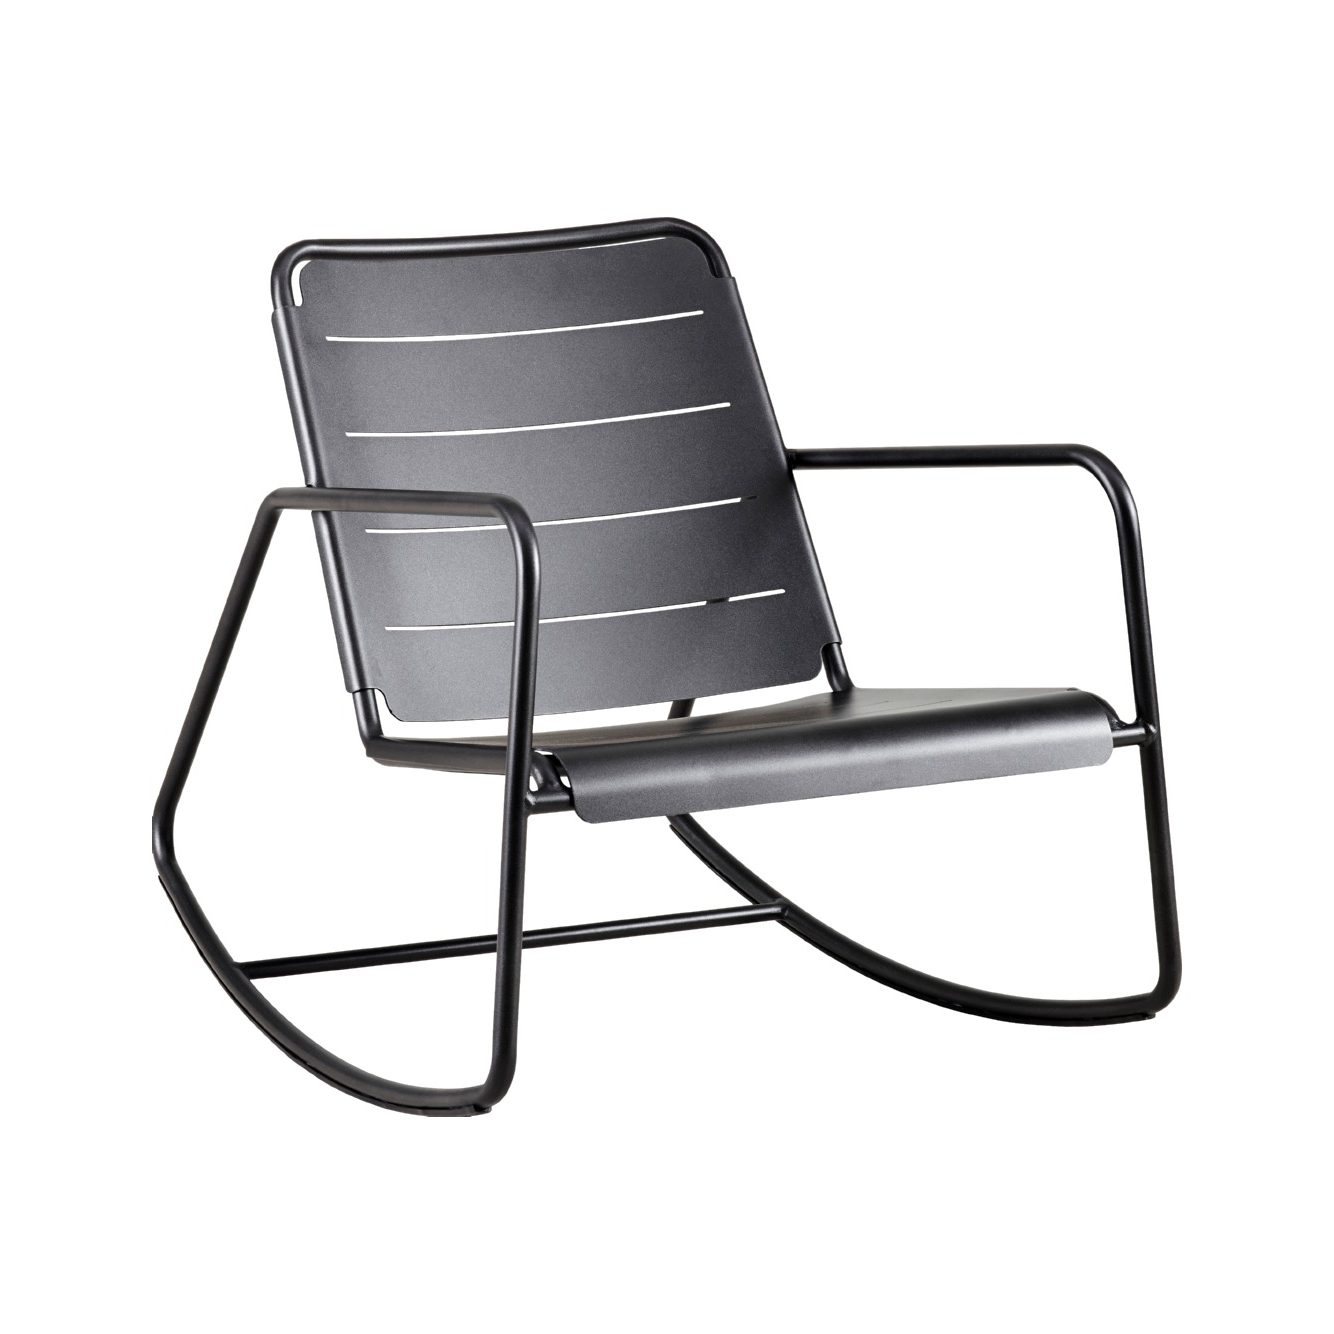 Garden Rocking Chairs For Patio & Garden | Jardin De Ville à Rocking Chair De Jardin